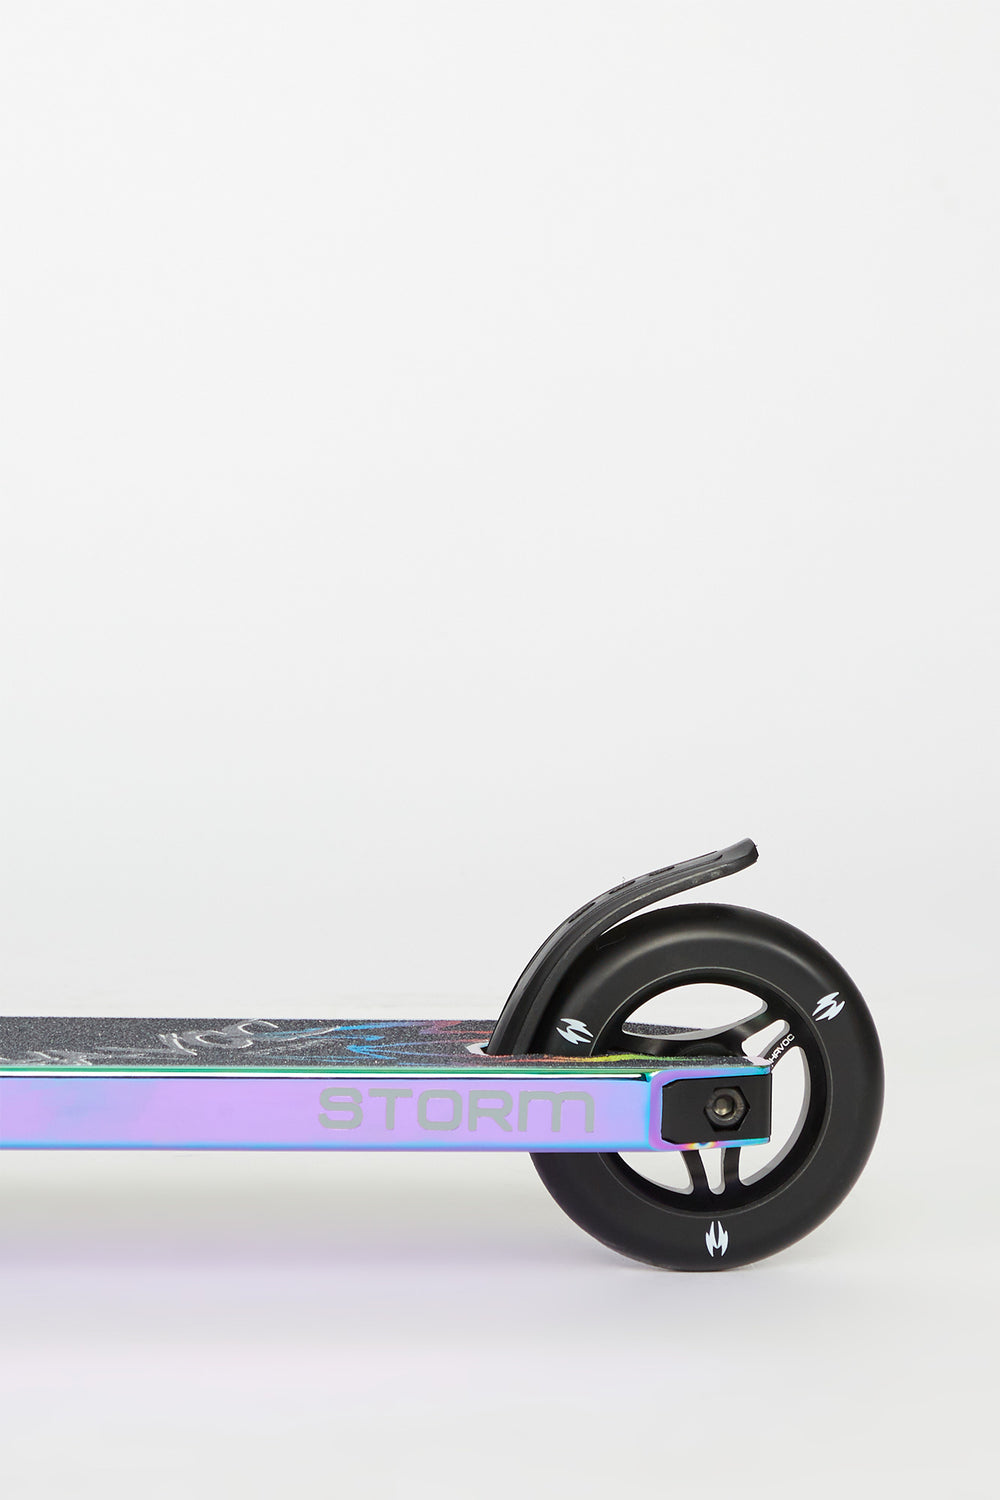 Havoc Storm Oil Slick Scooter Multi